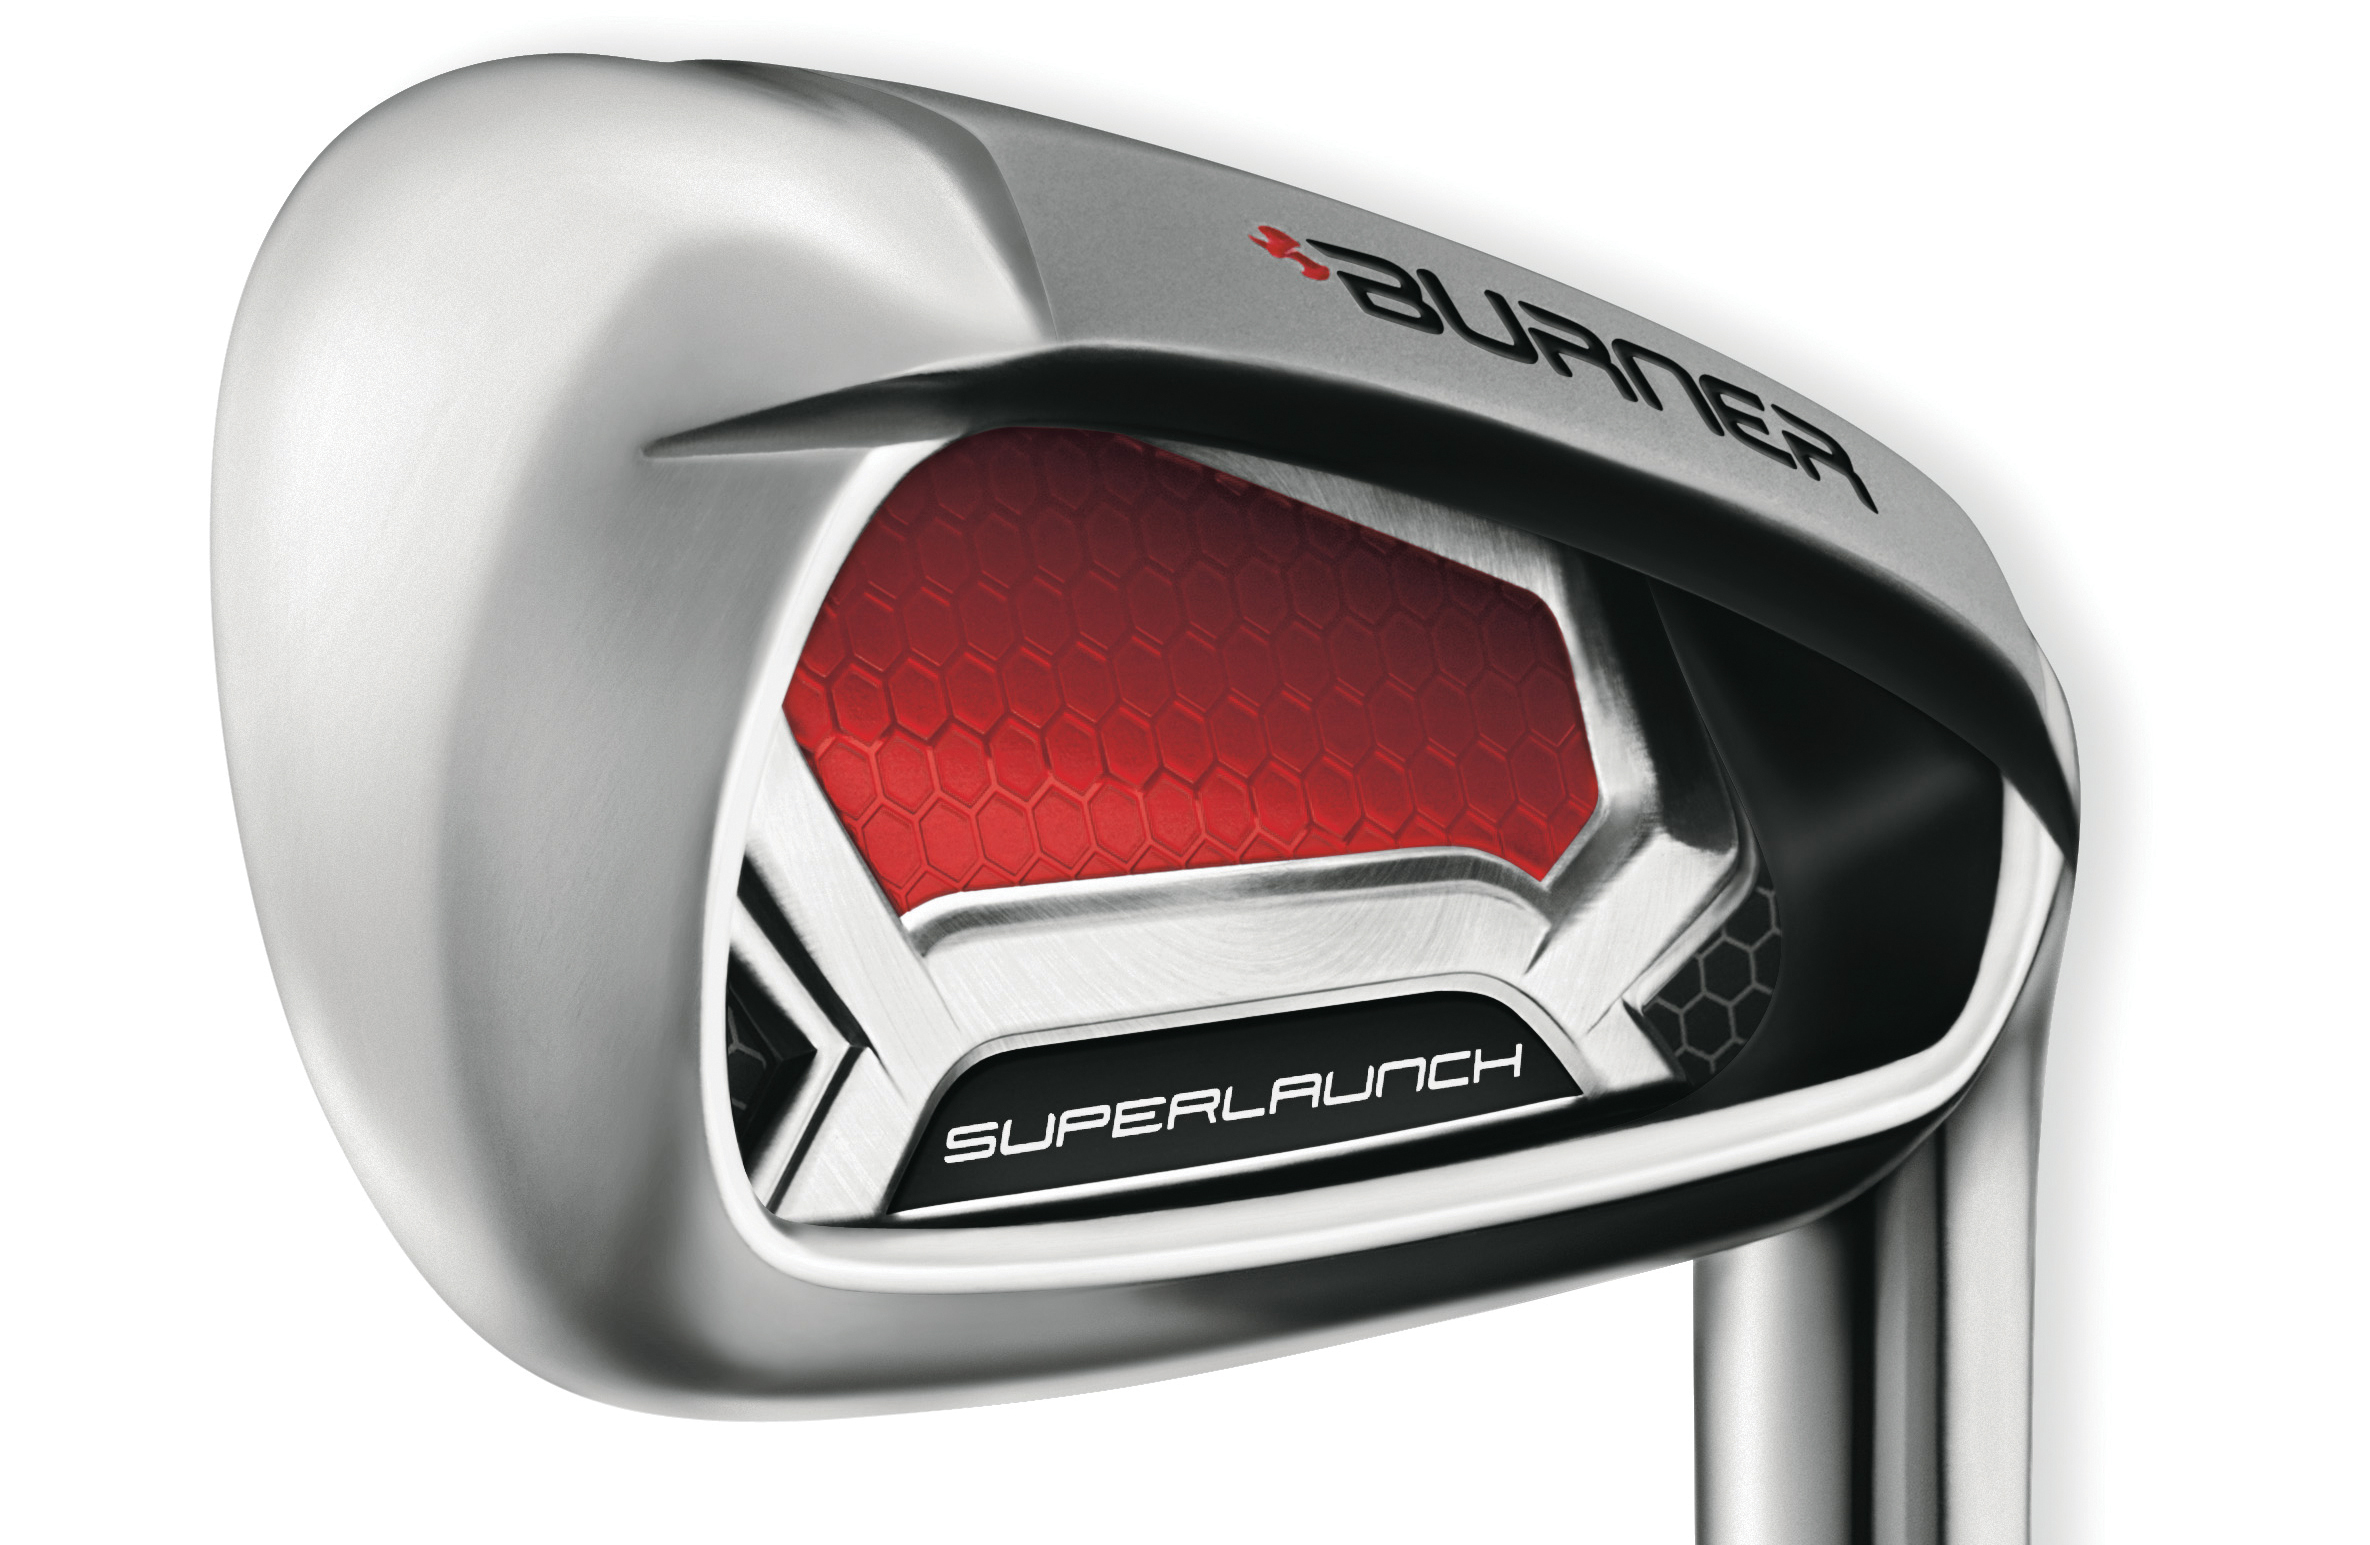 taylormade burner superlaunch irons review golf monthly